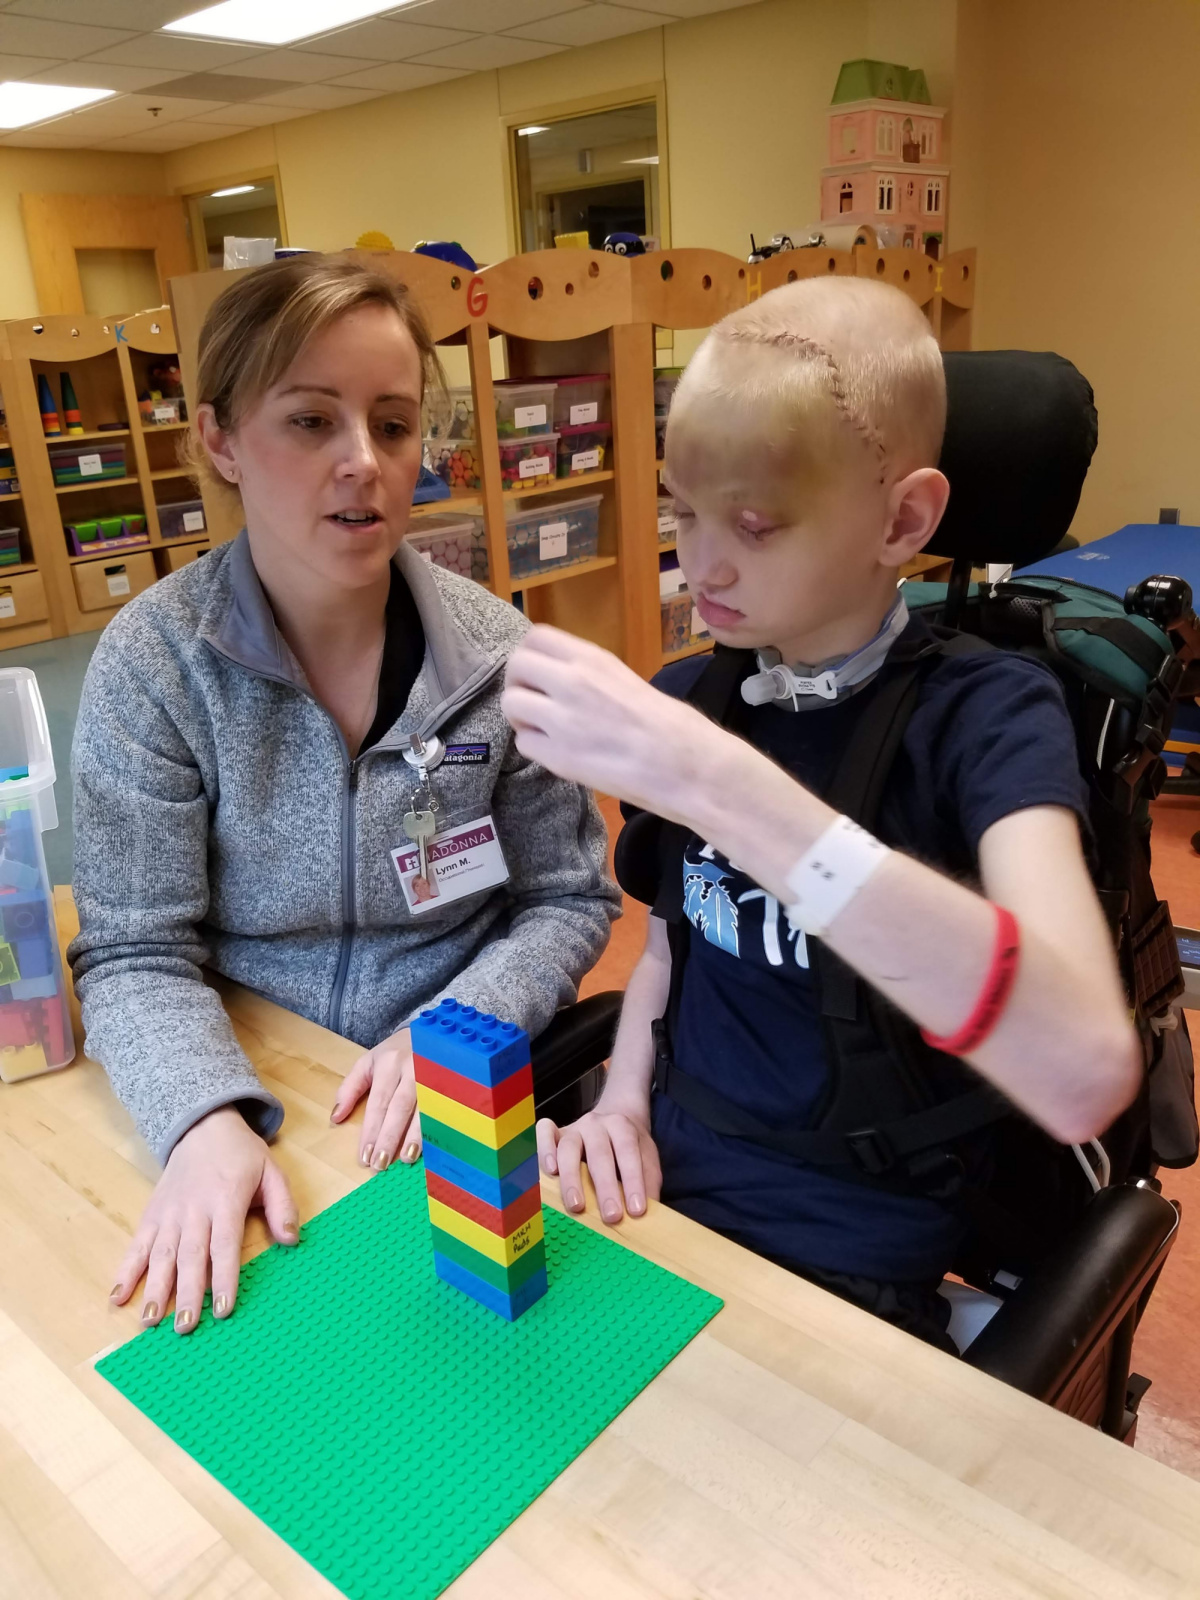 May 2019: Rebuilding life, one Lego at a time